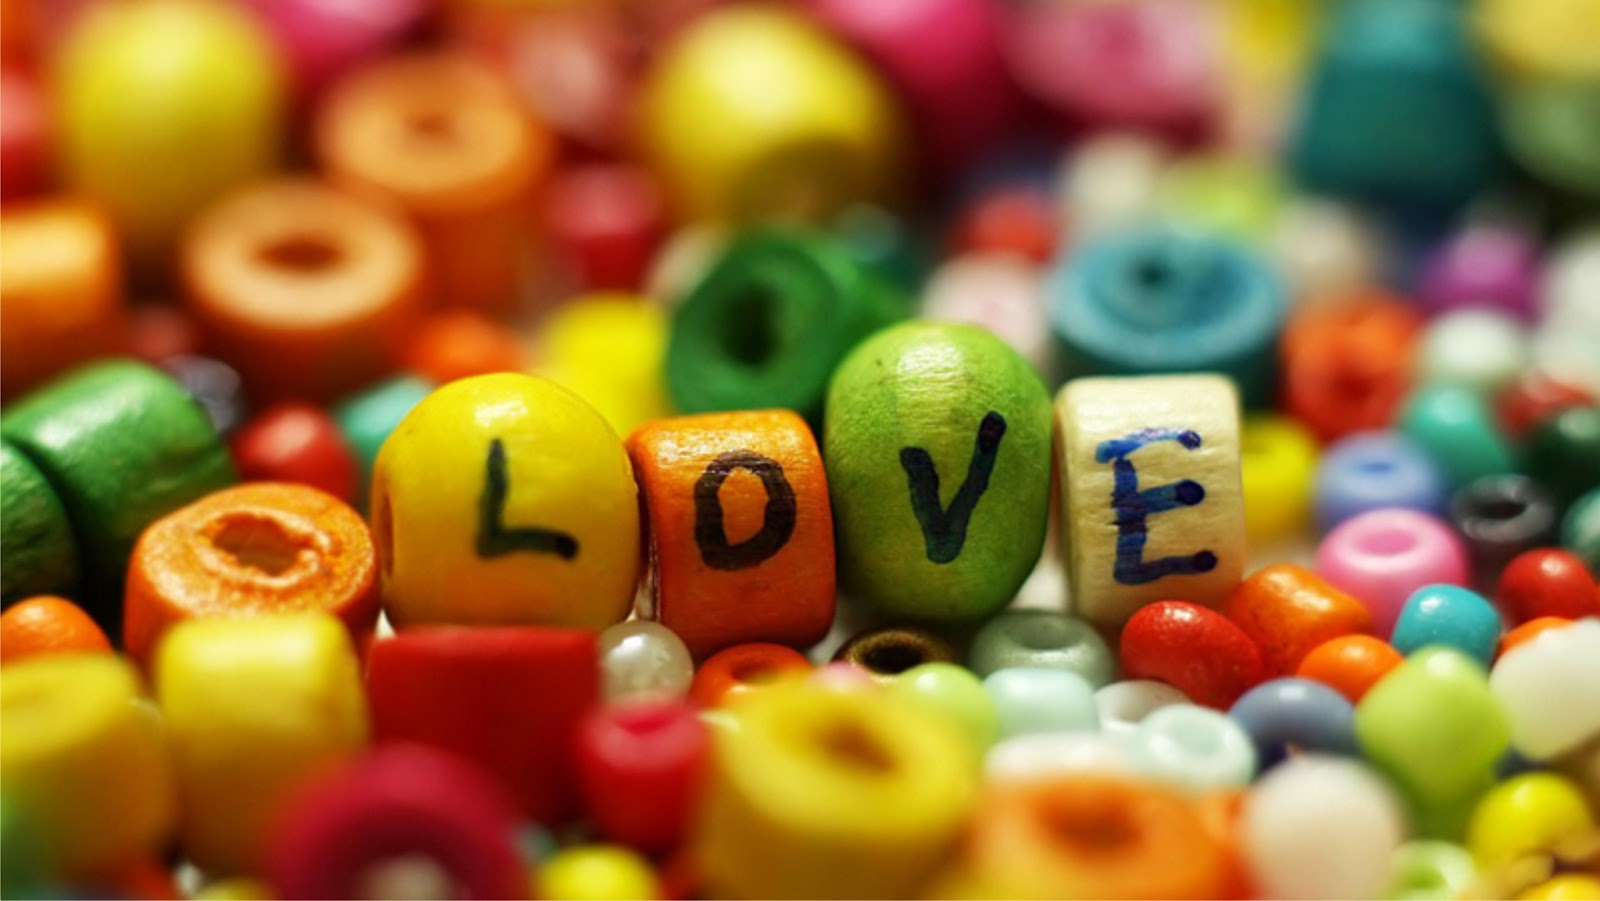 Love Wallpaper HD For Pc